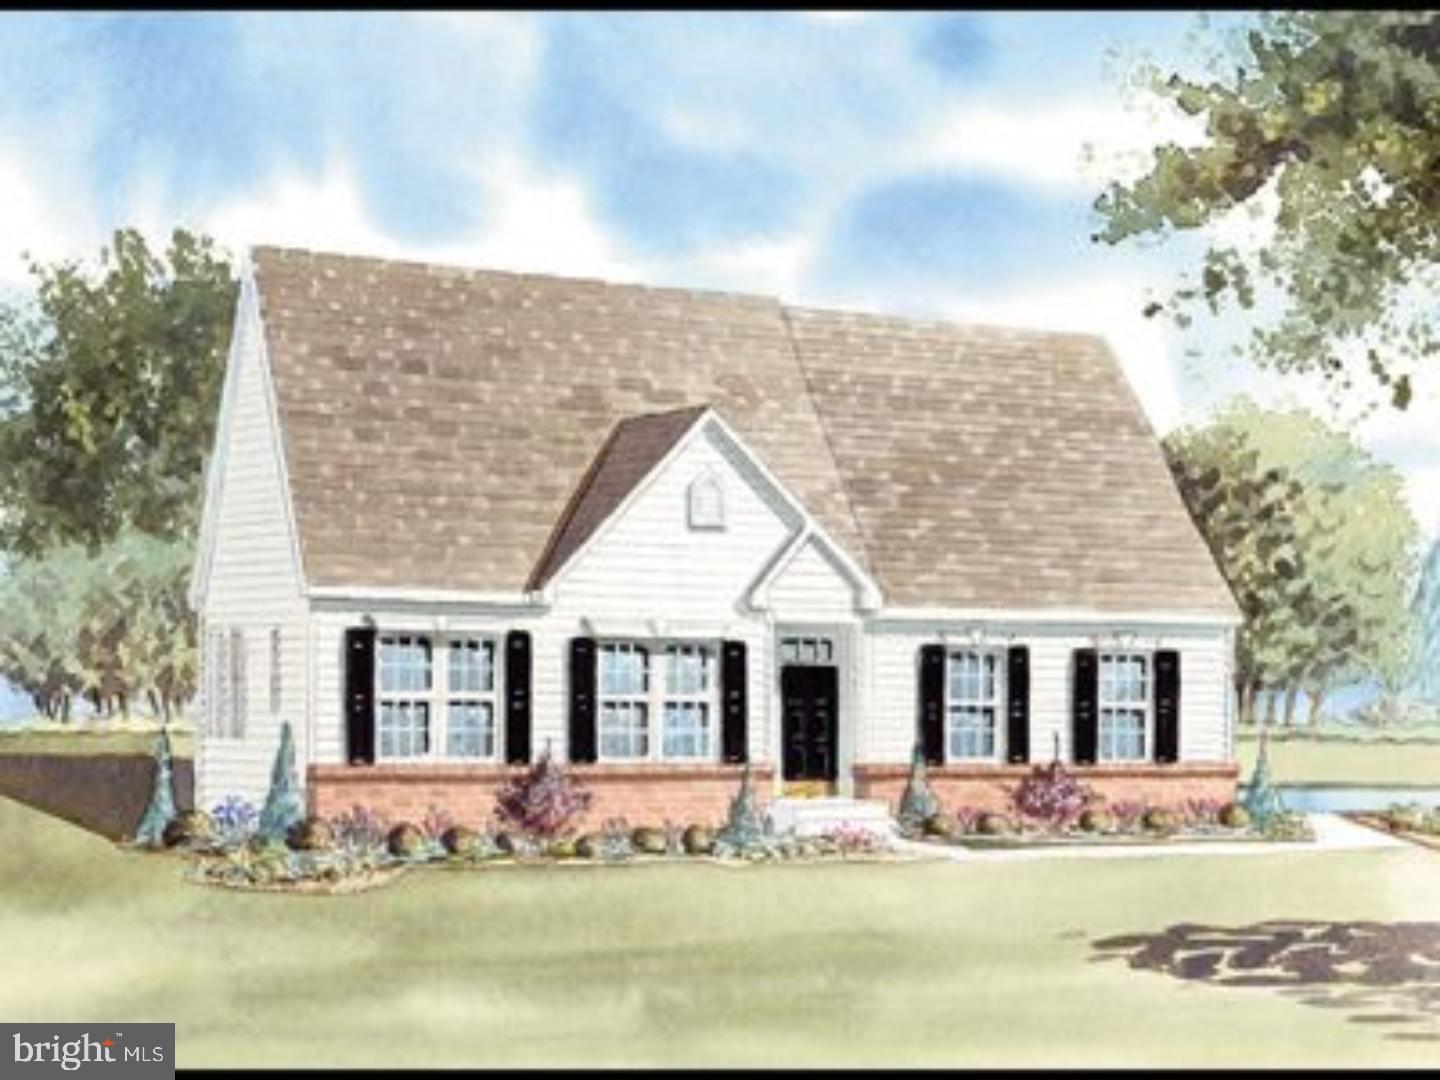 Sassafras Model- to be built. 3 bedroom, 2 full bath ranch home with vaulted ceiling in the great room, breakfast room, eat in kitchen with breakfast bar, formal dining room and the master bedroom suite with master bath and walk-in closet. Add a second floor area for your guests featuring a loft, bedroom and full bath.  This open floor plan can be build with an option sunroom and an optional 3 car garage. Semi-Customize your new home!  With all of the standard features such as side entry garages, stone water table, granite counter tops and stainless steel appliances. There is no need to look any further!  Public sewer & water.